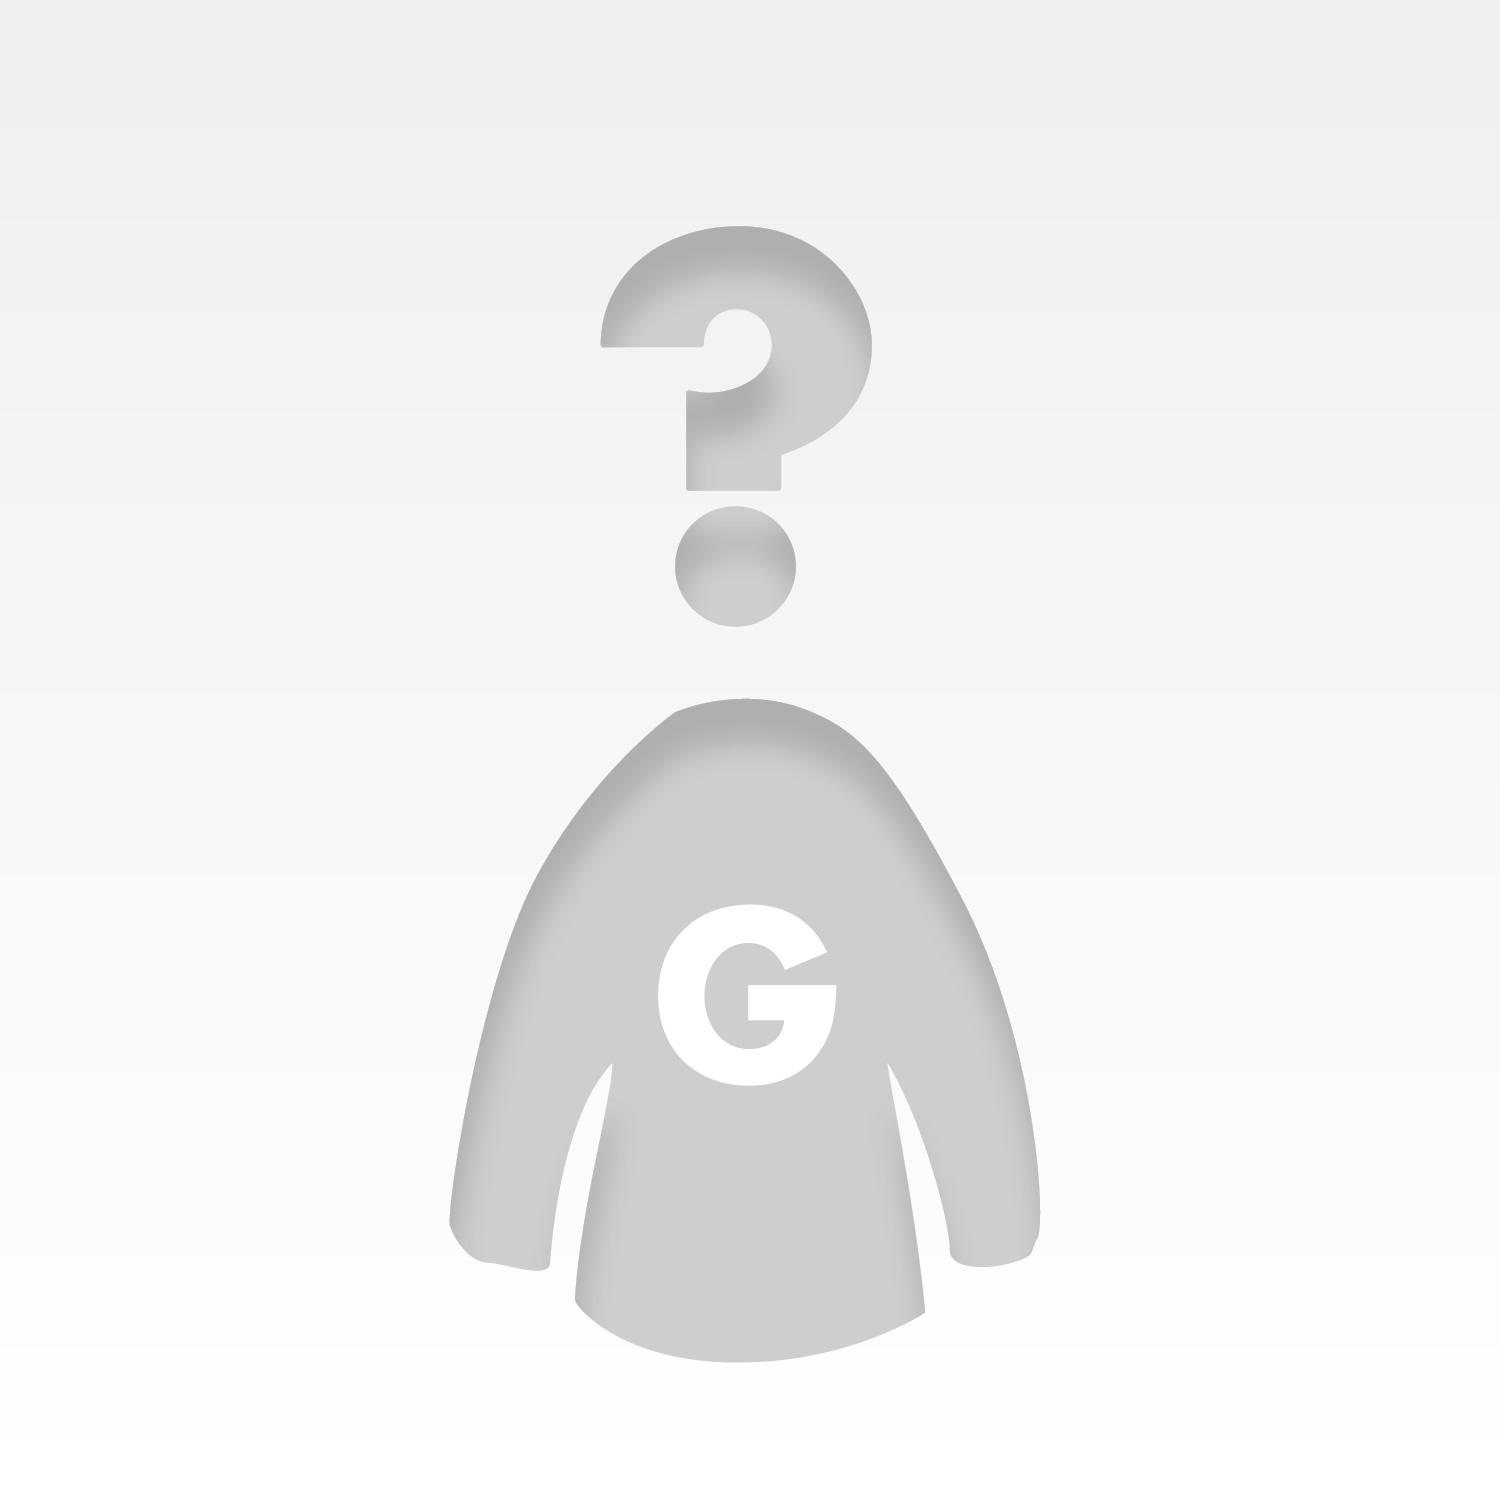 The s2gog4t's avatar